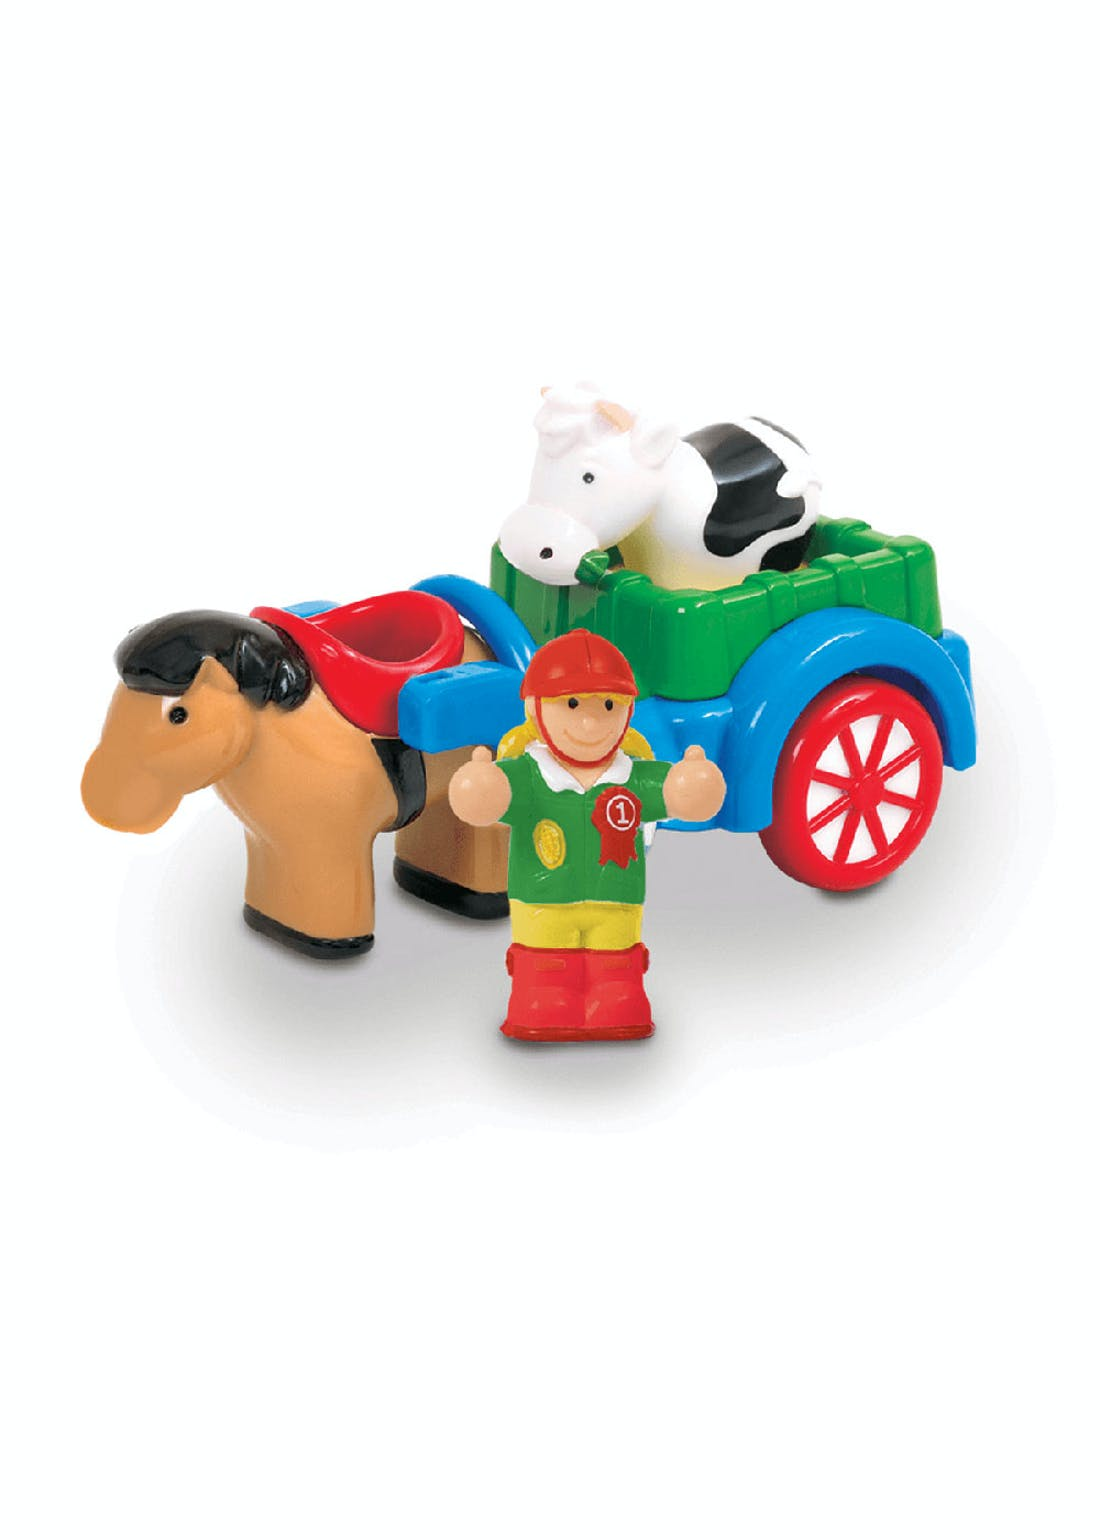 WOW Toys Farm Yard Play Set (42cm x 28cm x 10cm)